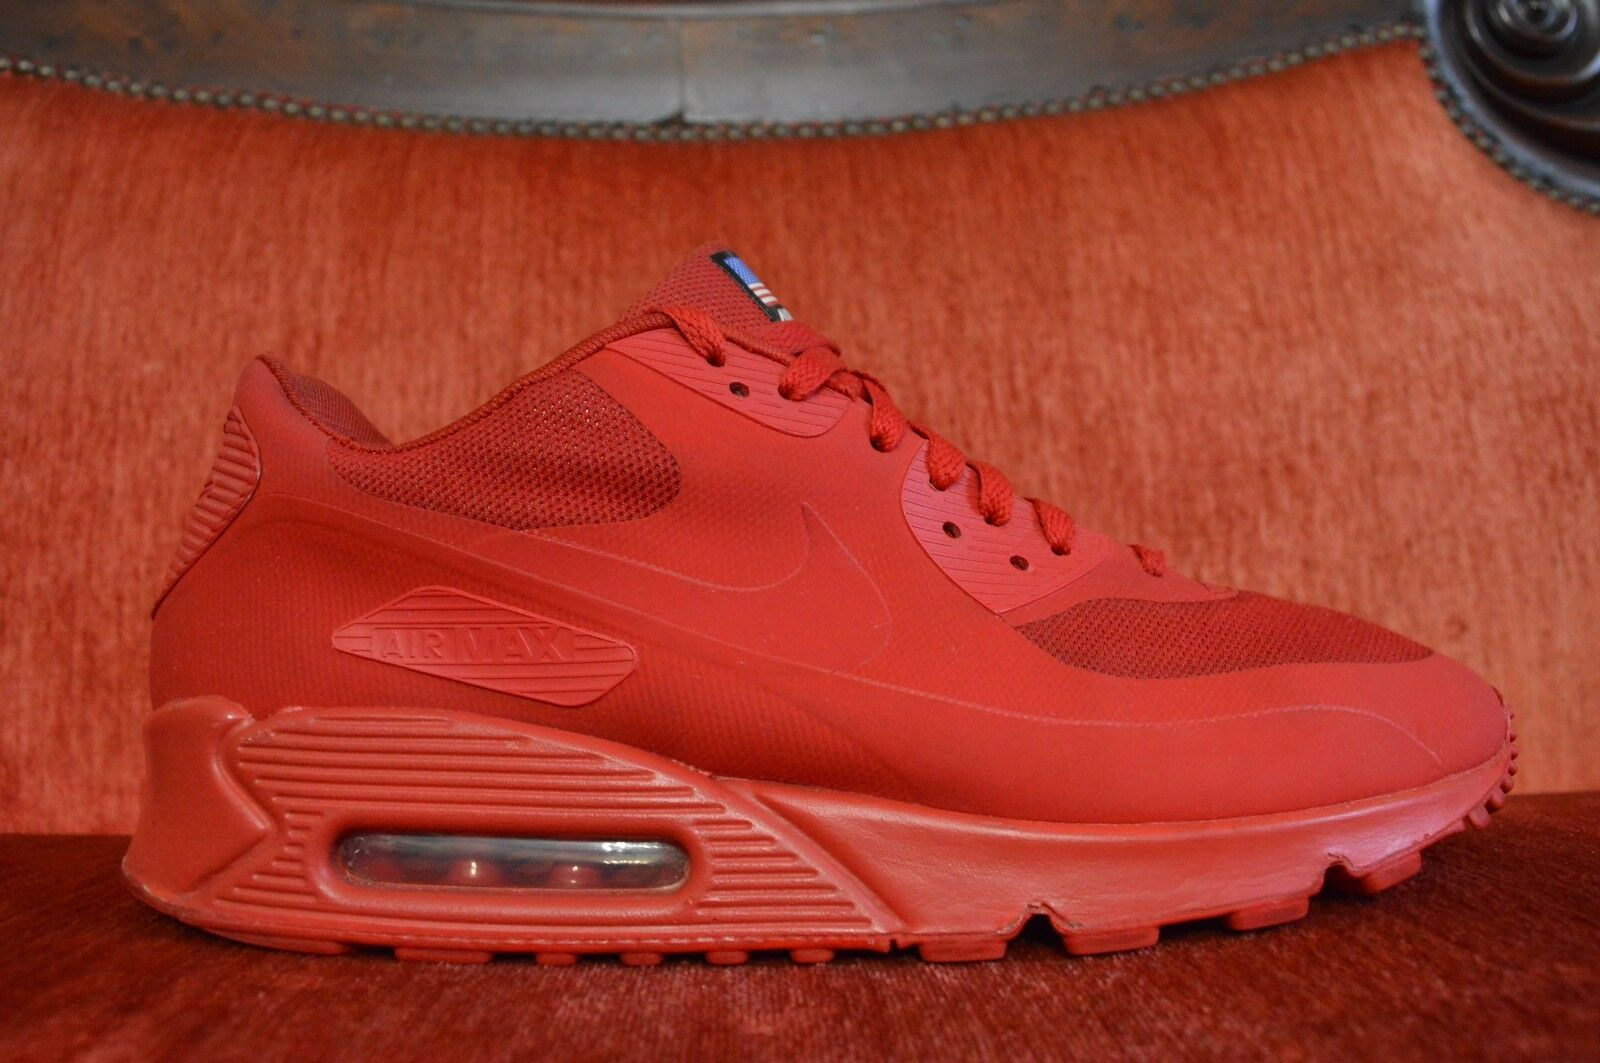 NIKE AIR MAX 90 HYPERFUSE QS SPORT RED INDEPENDENCE DAY 613841-660 SIZE 11